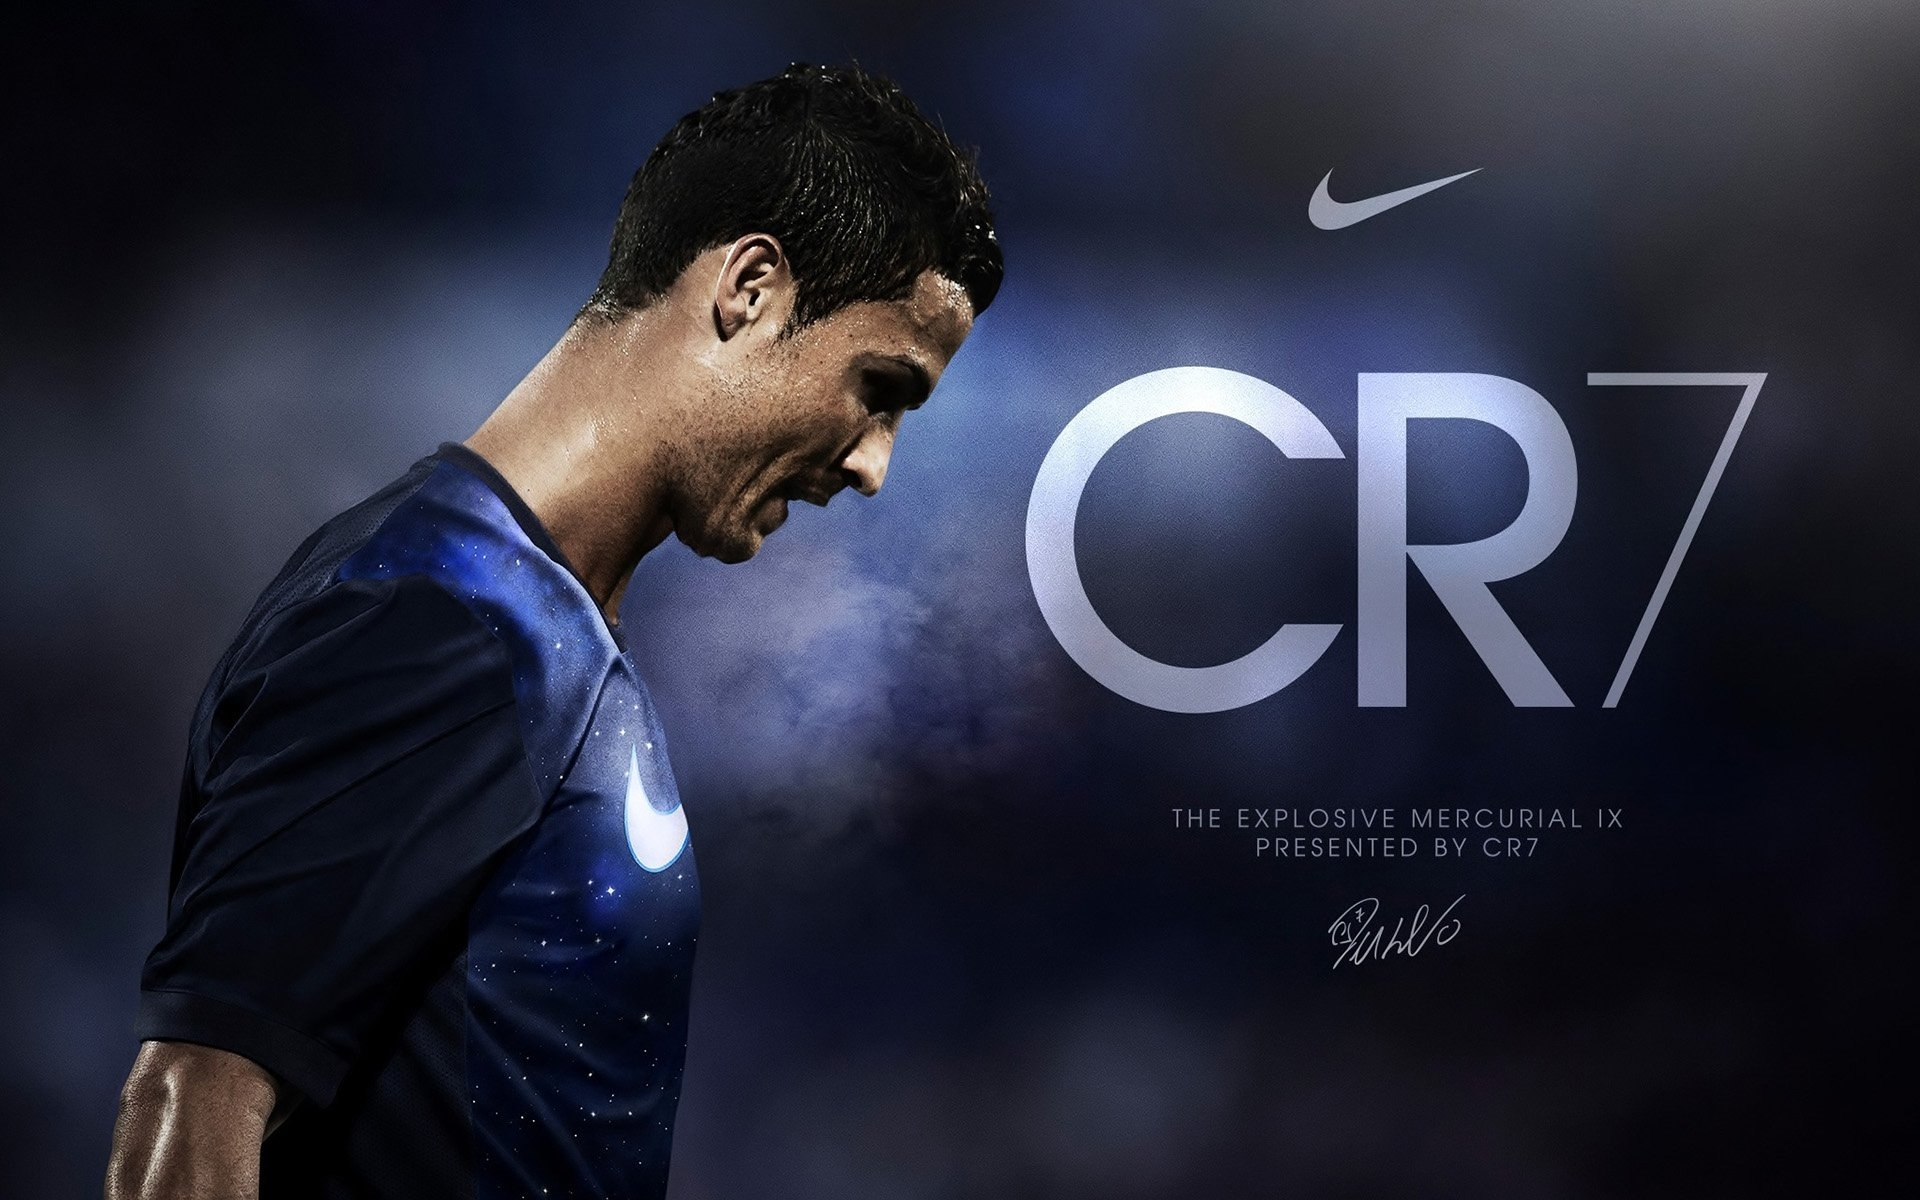 10 Top Cristiano Ronaldo Hd Wallpapers FULL HD 1080p For PC Desktop